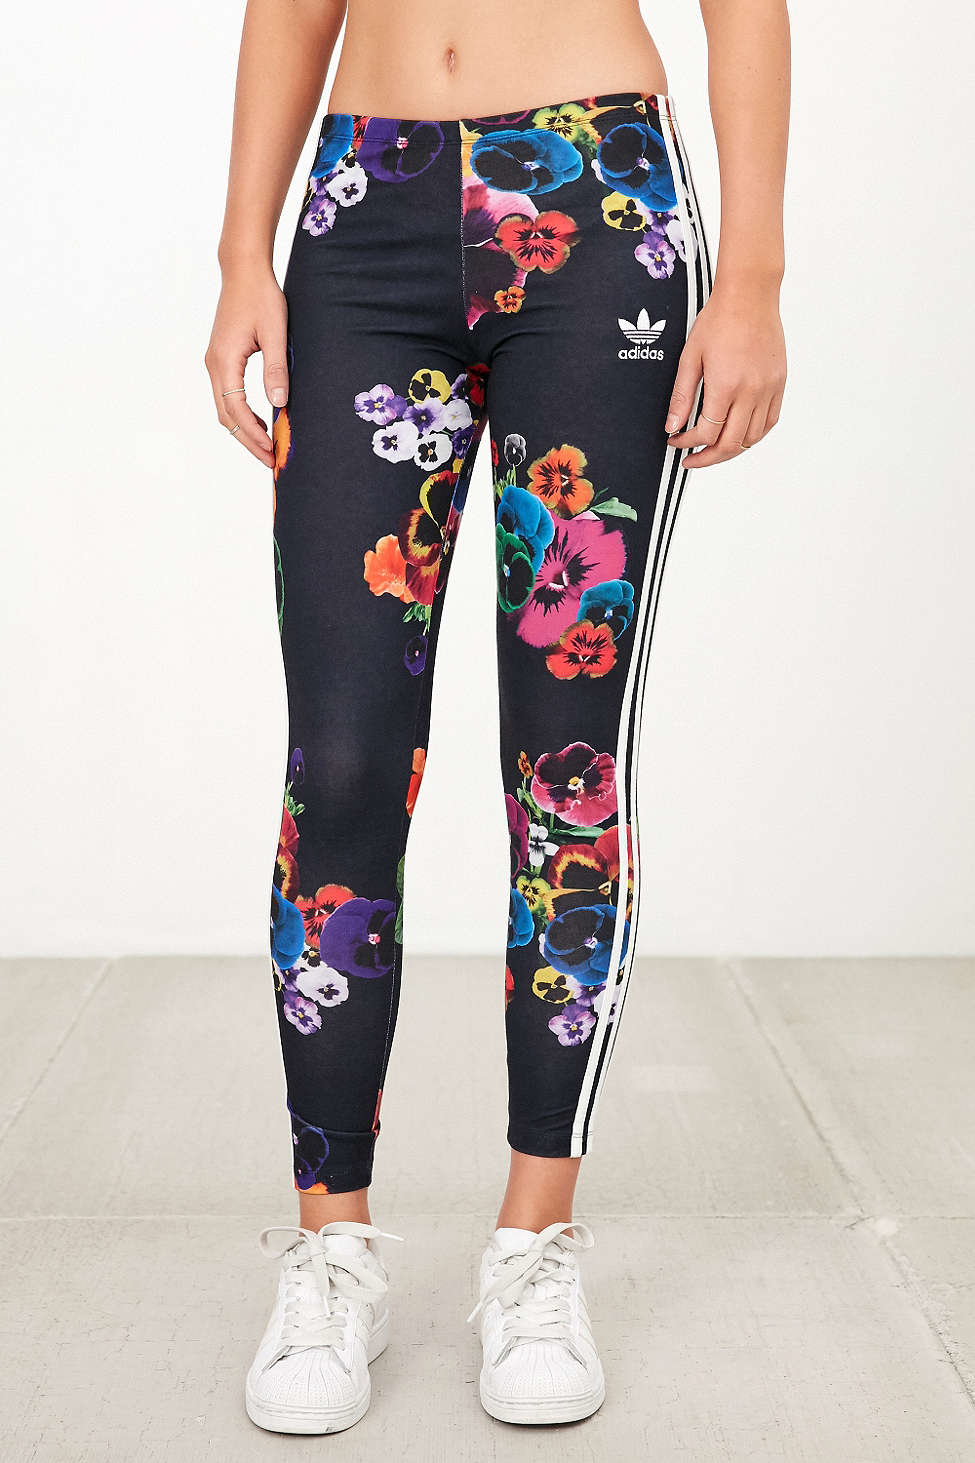 adidas floral tights